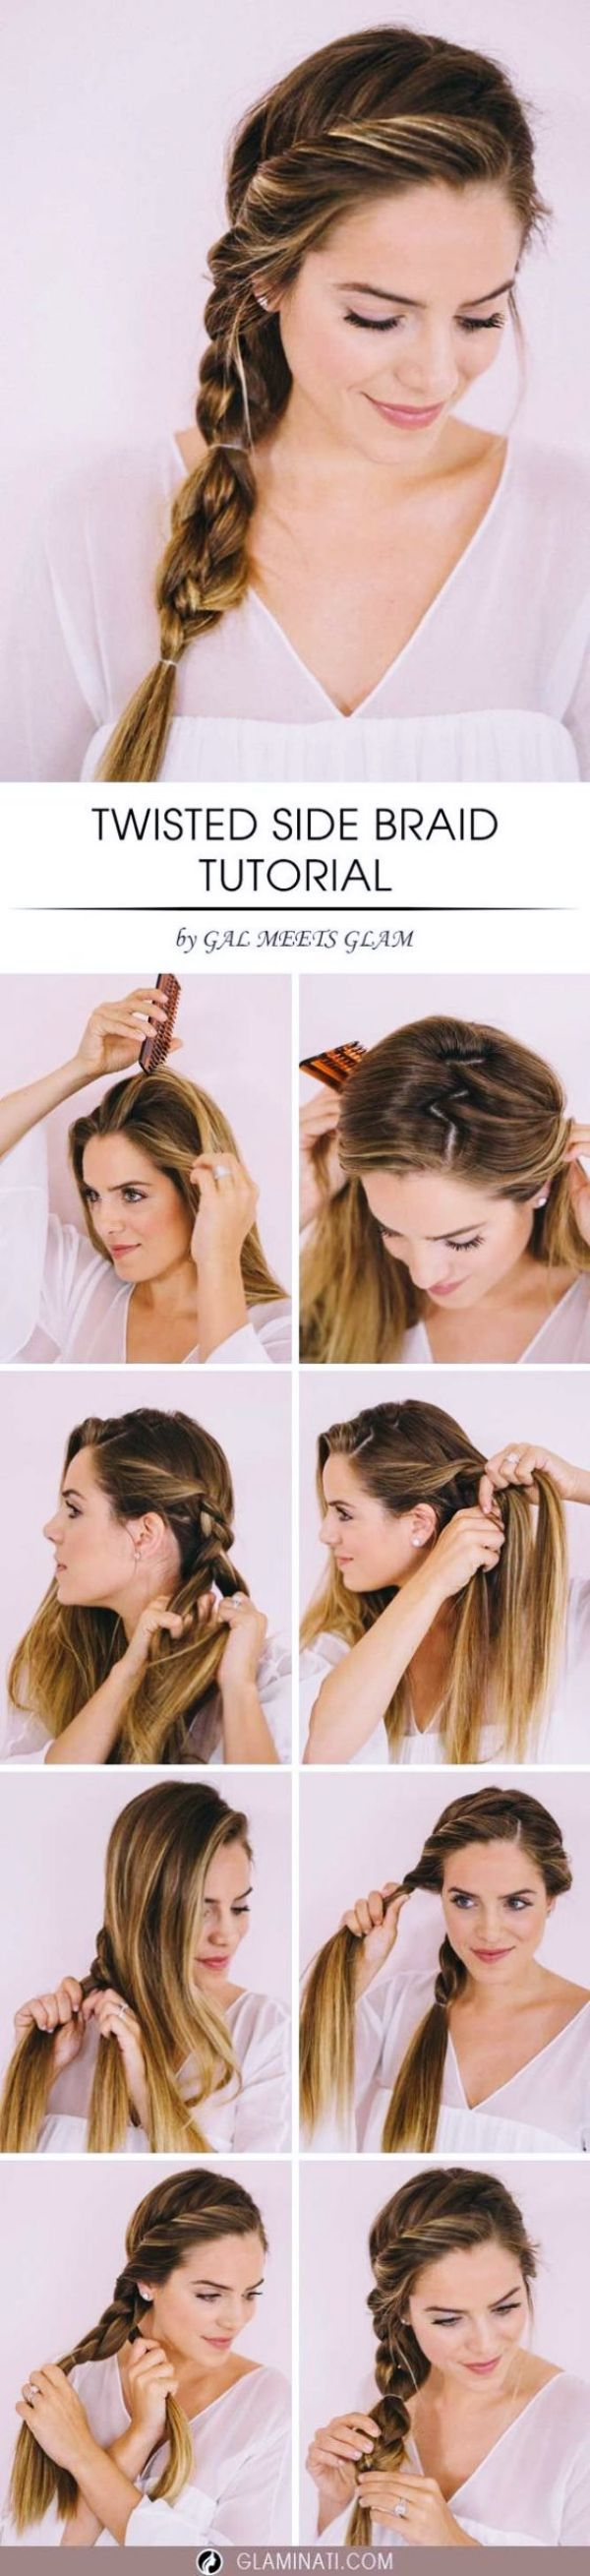 40 Quick Self Hairstyles for Working MOMs